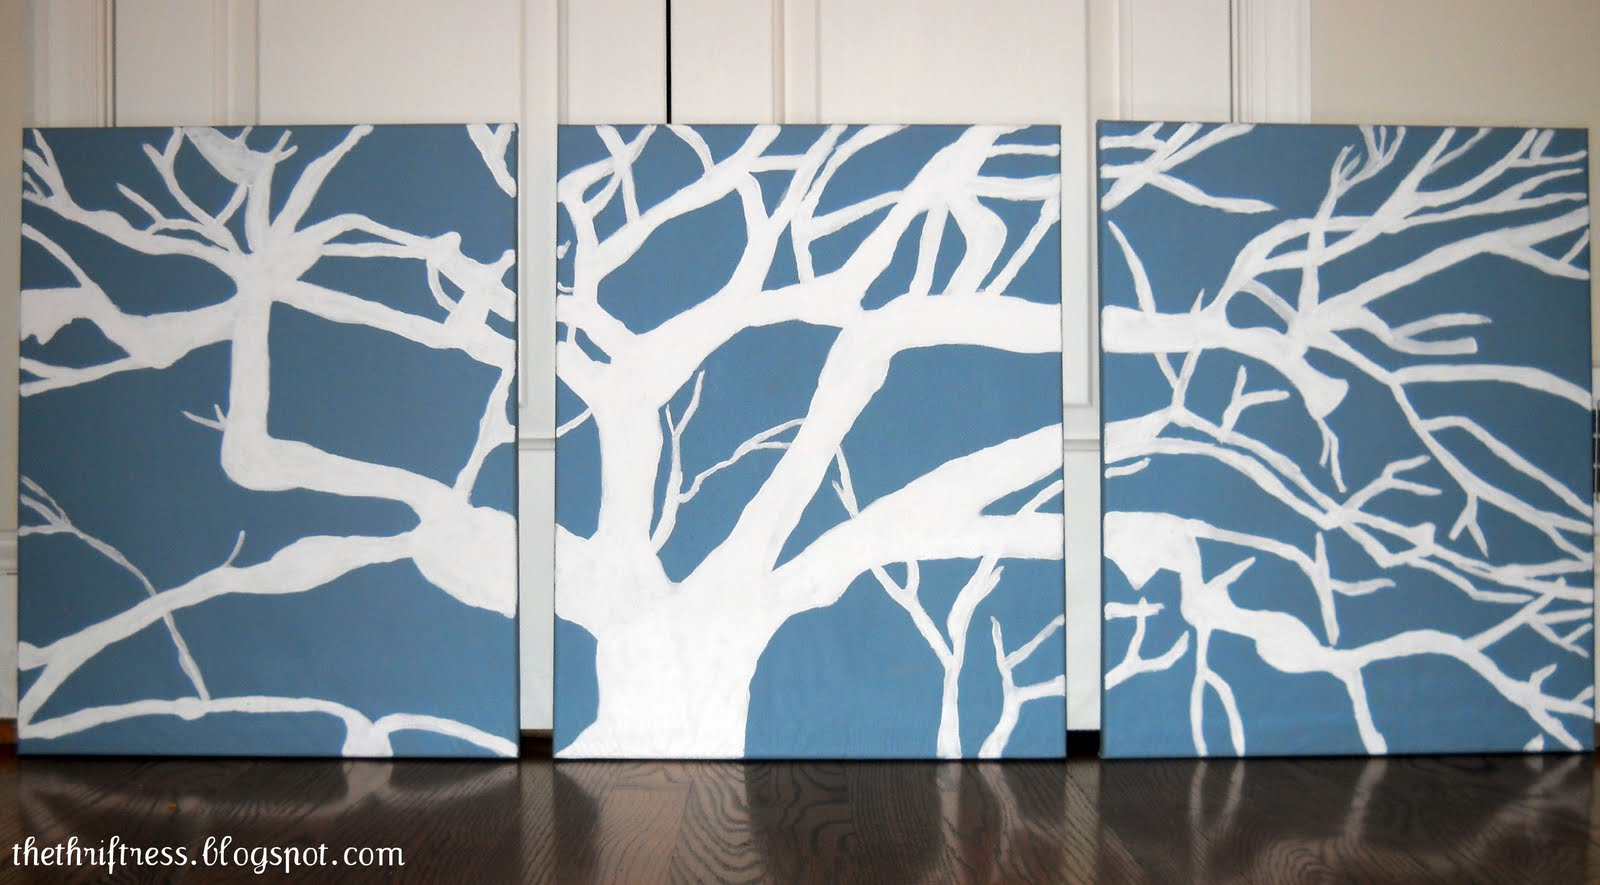 The Thriftress: DIY Wall Art - My Masterpiece